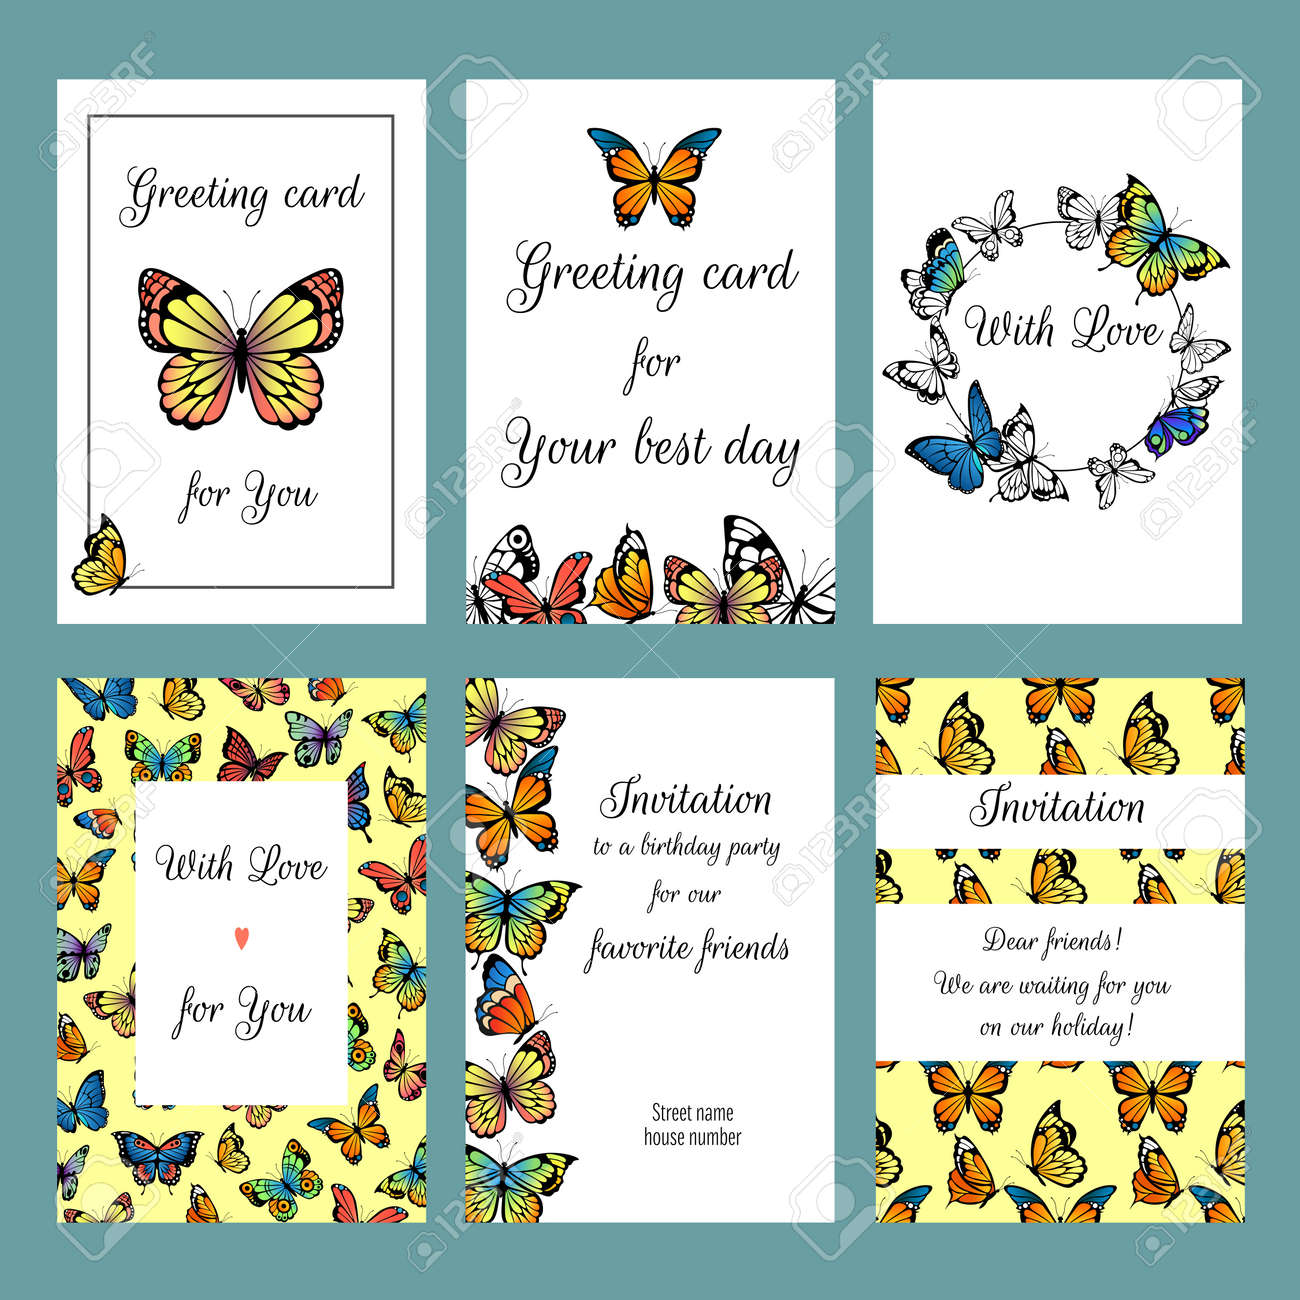 Cards with butterflies. Design template of cards invitation with illustrations of colored butterflies - 167536774